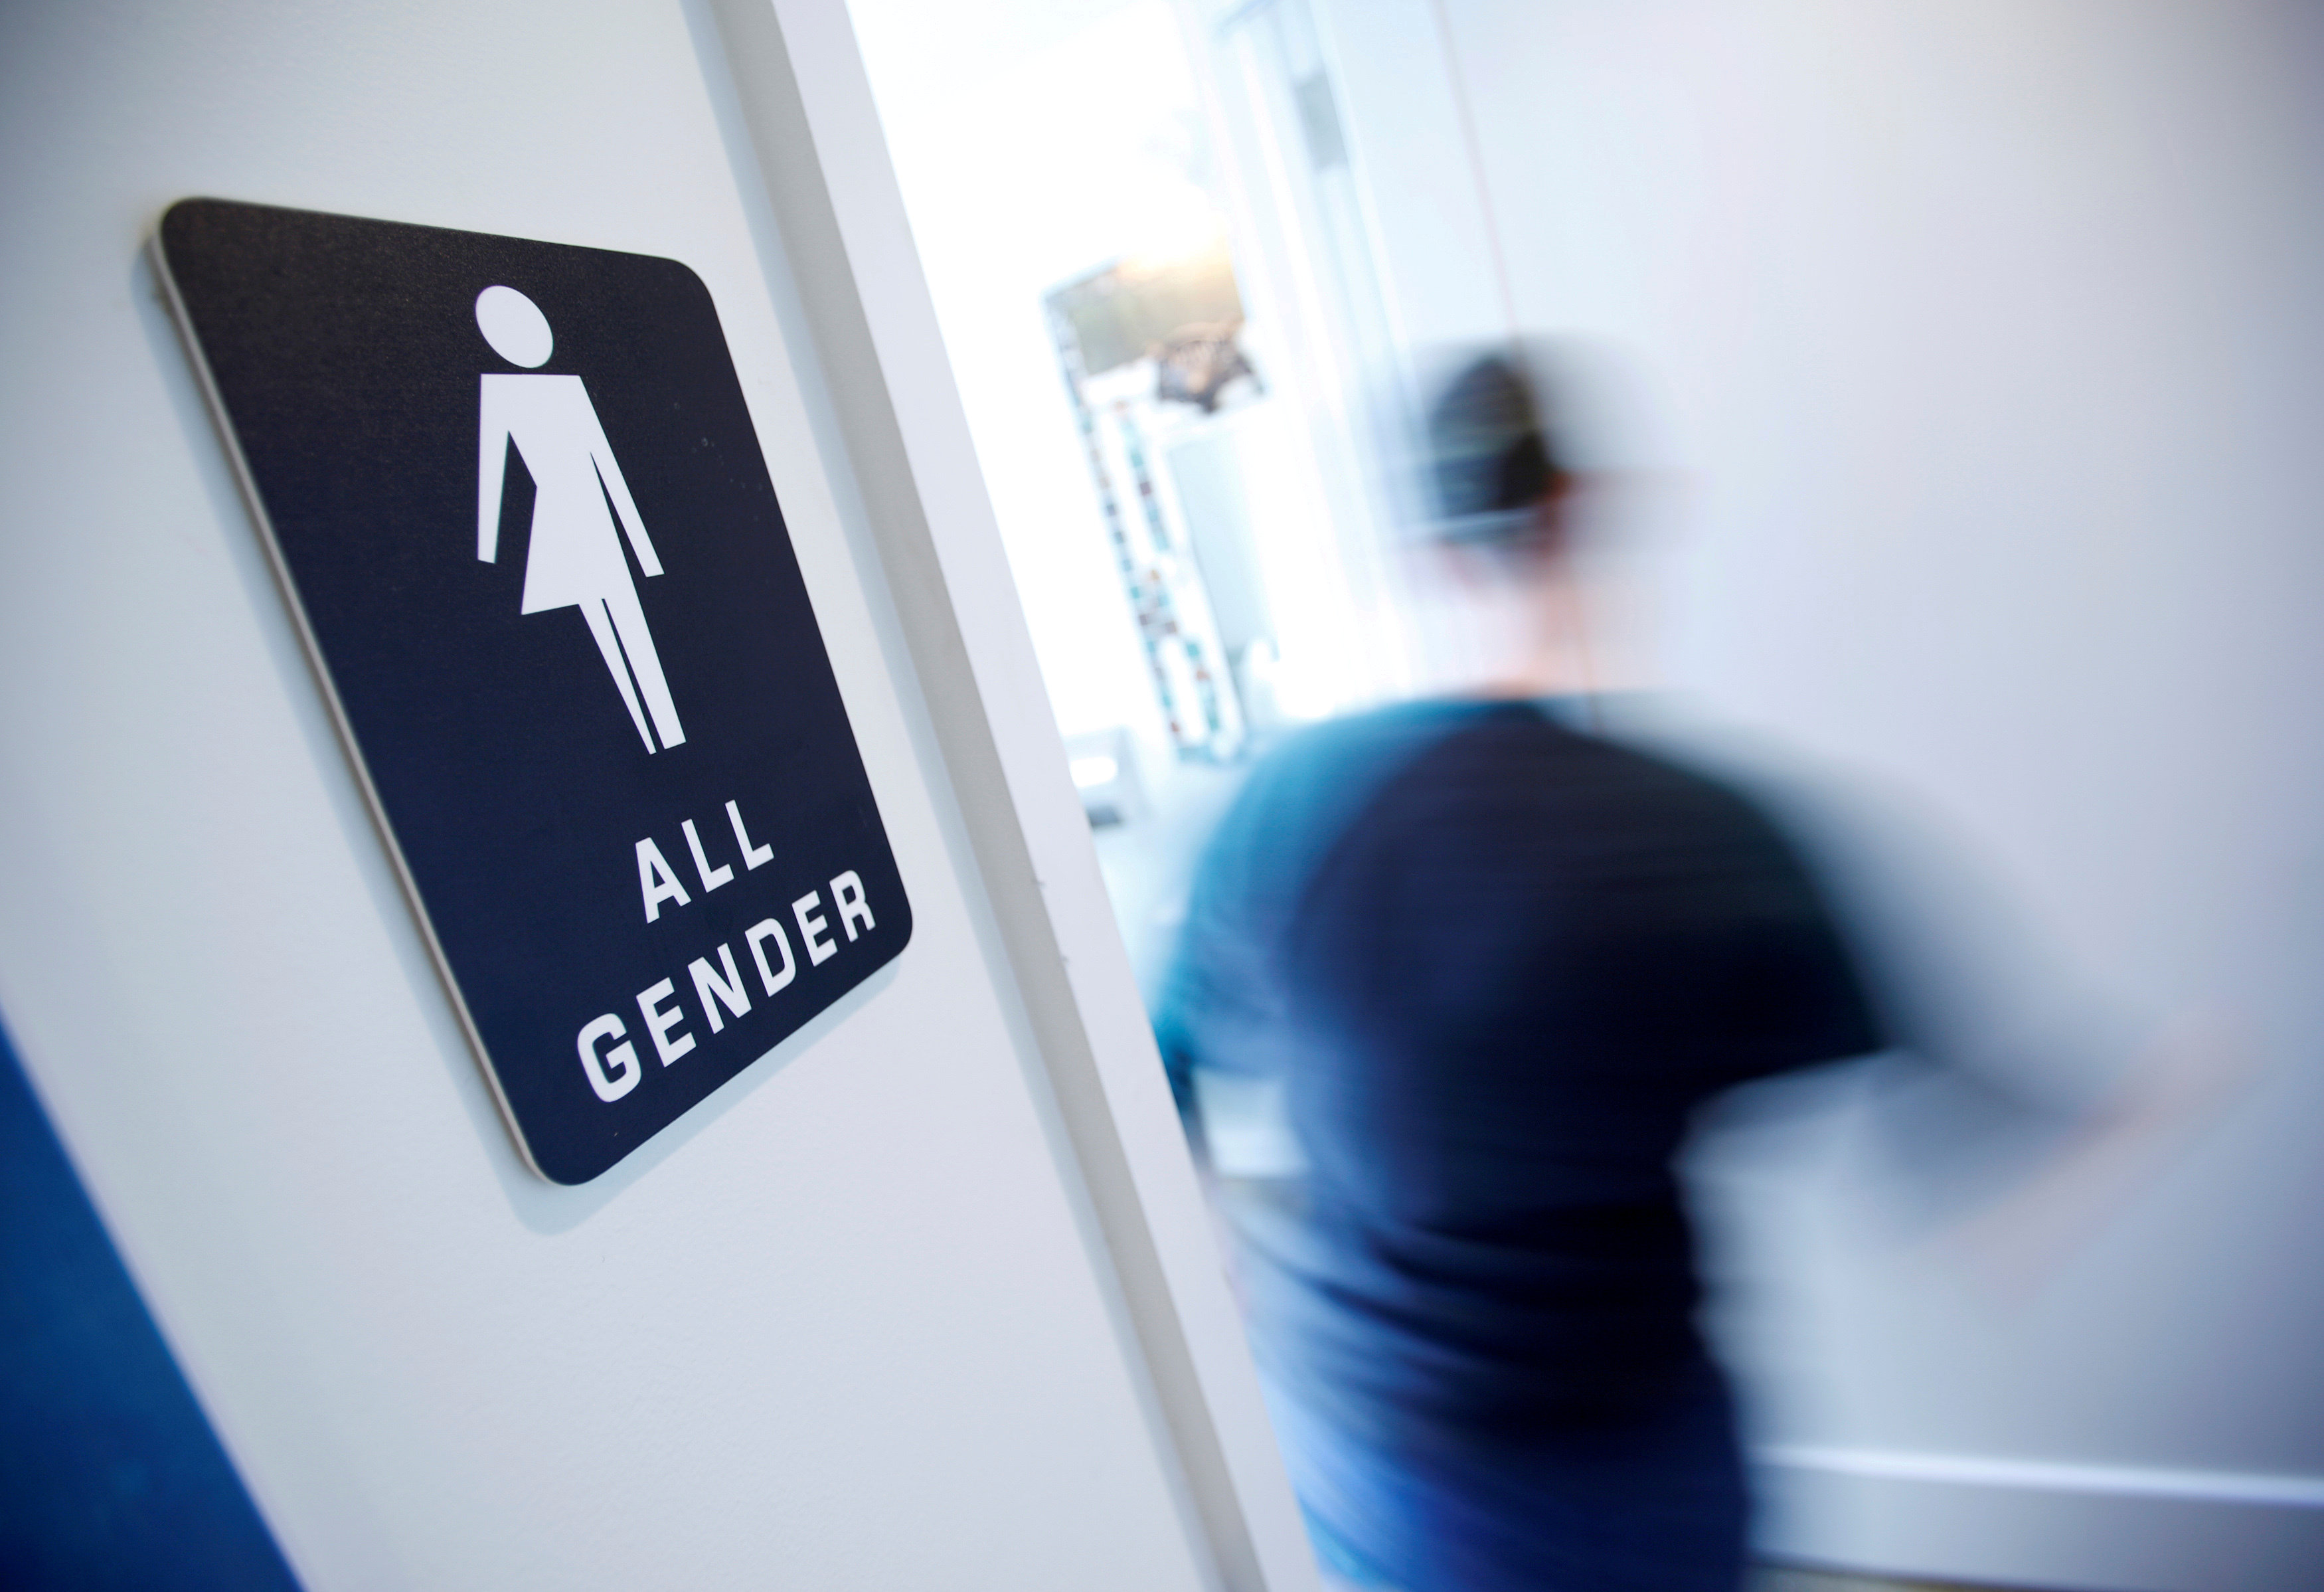 FILE PHOTO - A bathroom sign welcomes both genders at the Cacao Cinnamon coffee shop in Durham, North Carolina, United States on May 3, 2016. REUTERS/Jonathan Drake/File Photo